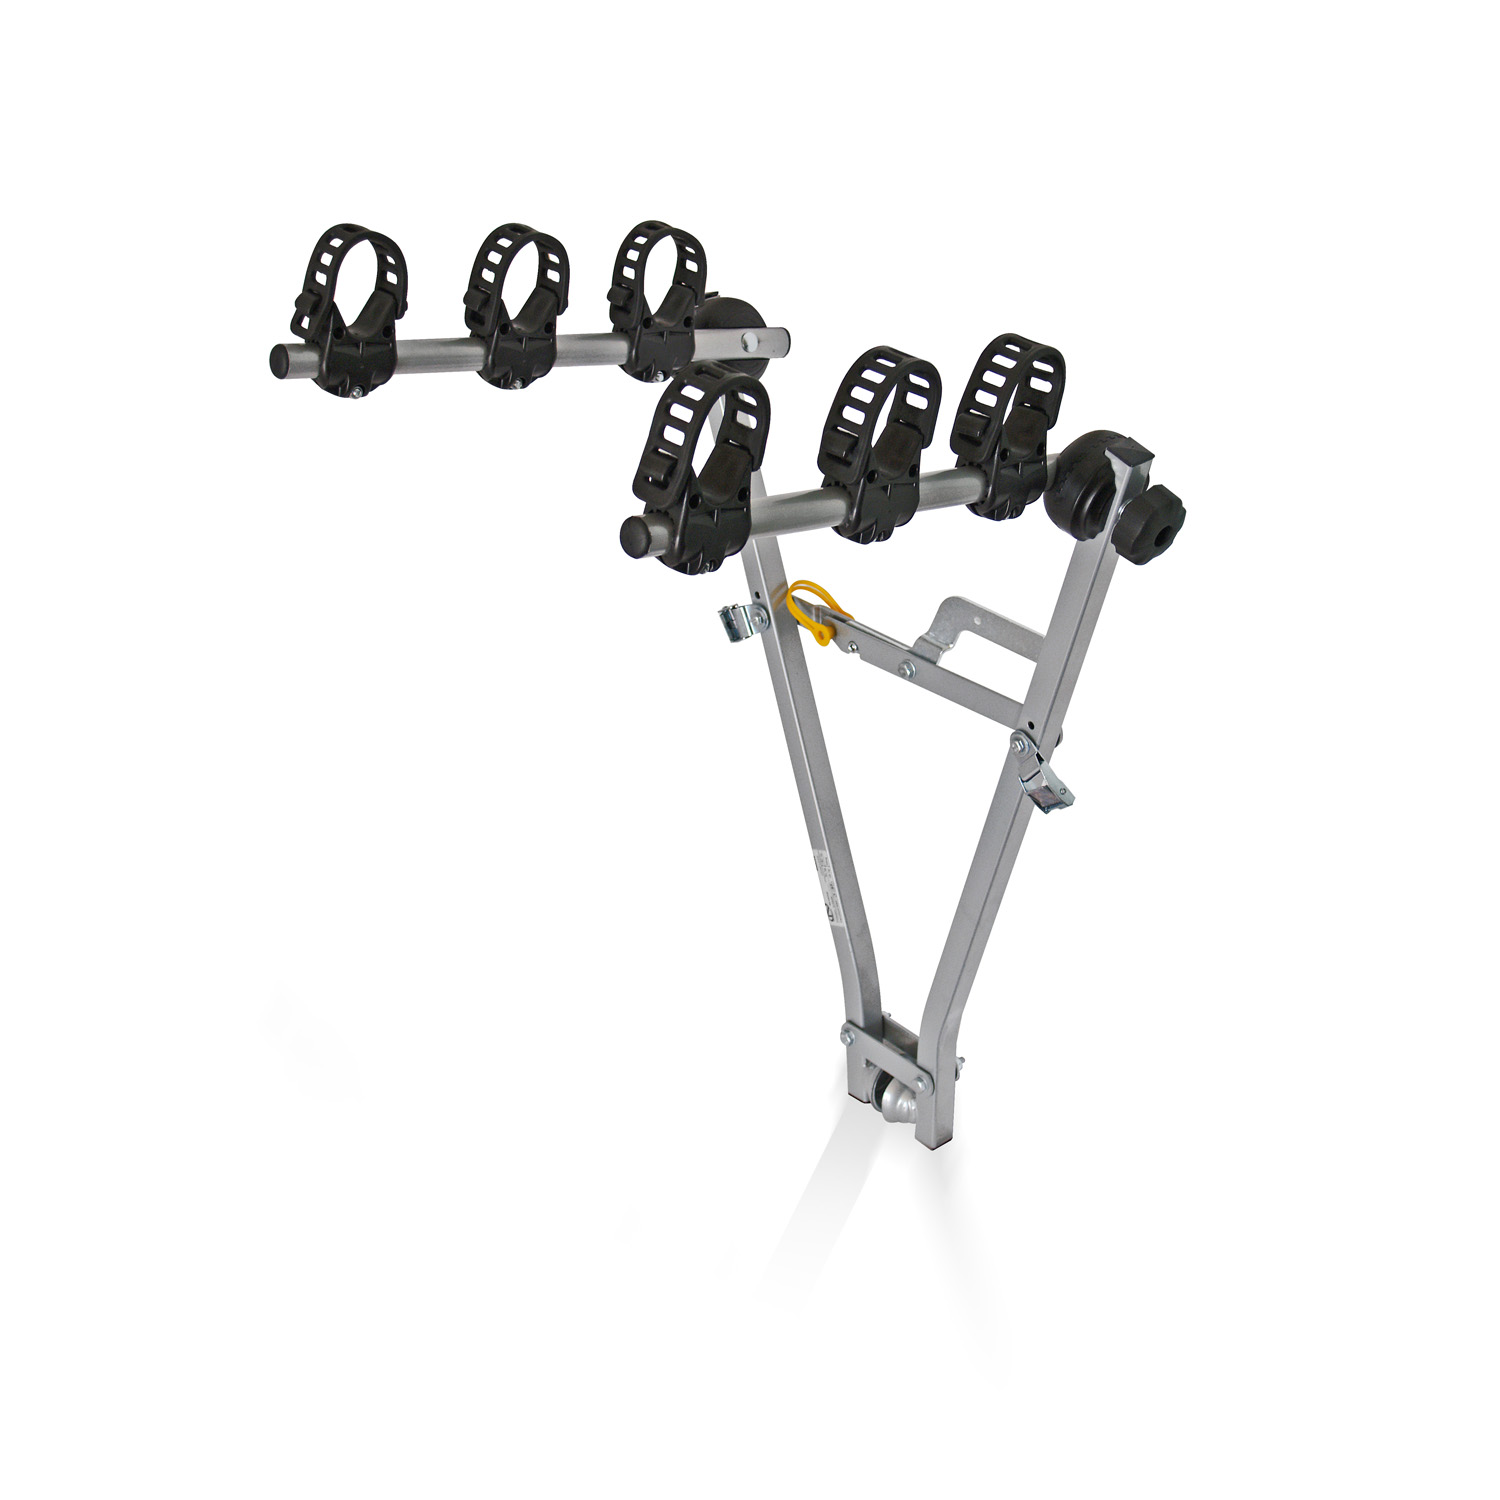 Image of Tow Bar Mounted Cycle Carrier